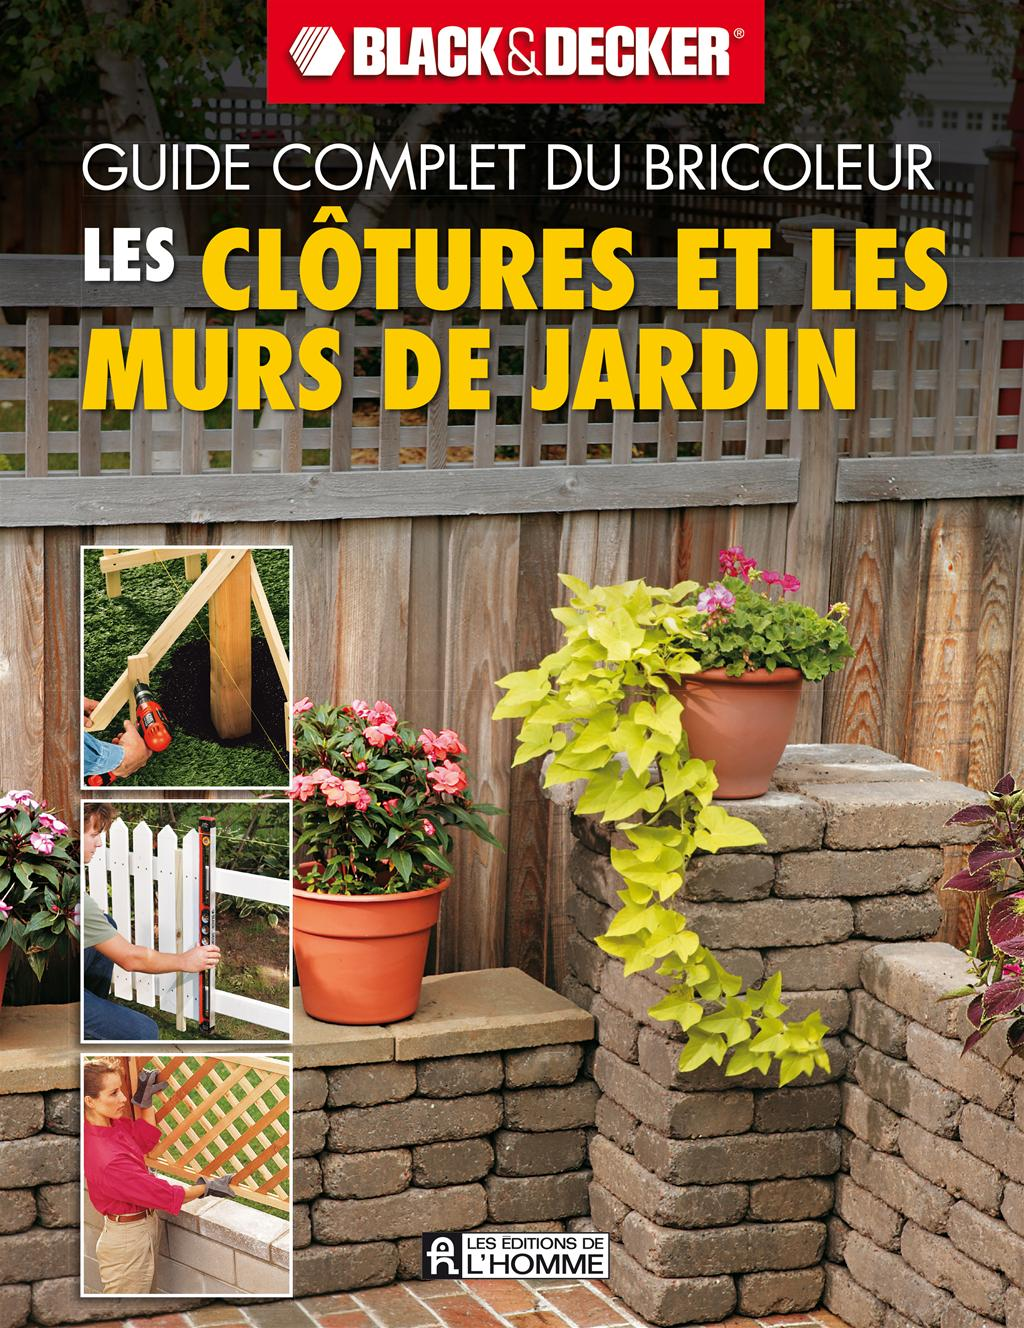 livre les cl tures et les murs de jardin messageries adp. Black Bedroom Furniture Sets. Home Design Ideas